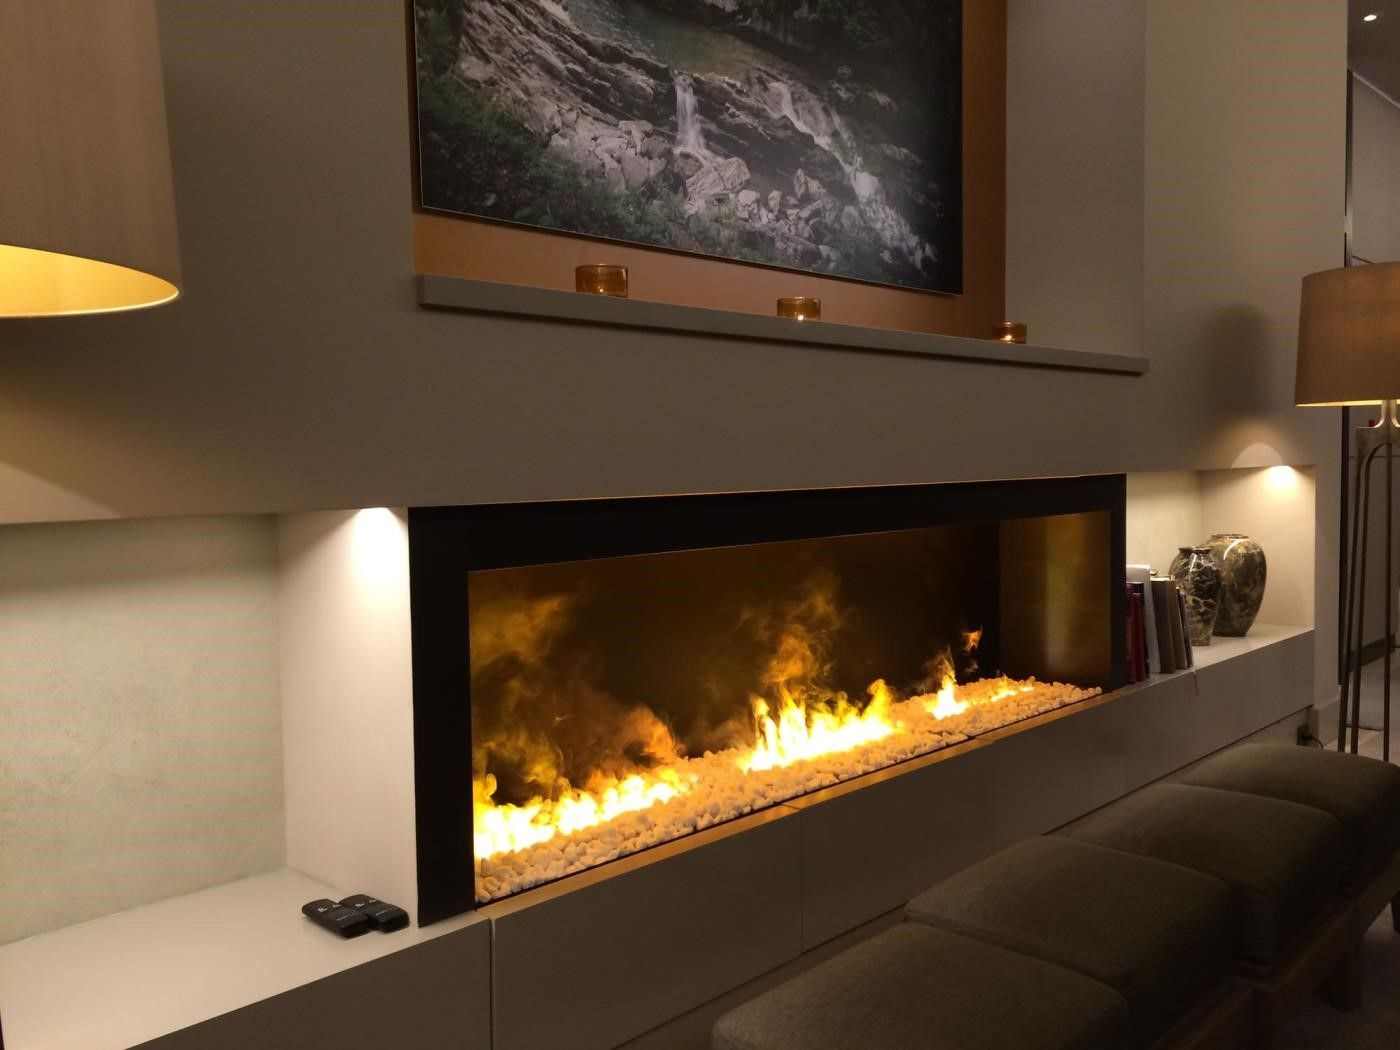 best electric fireplaces ideas on pinterest  fireplace tv  - wall mount electric fireplace under tv wwwhandymangoldcoastcom